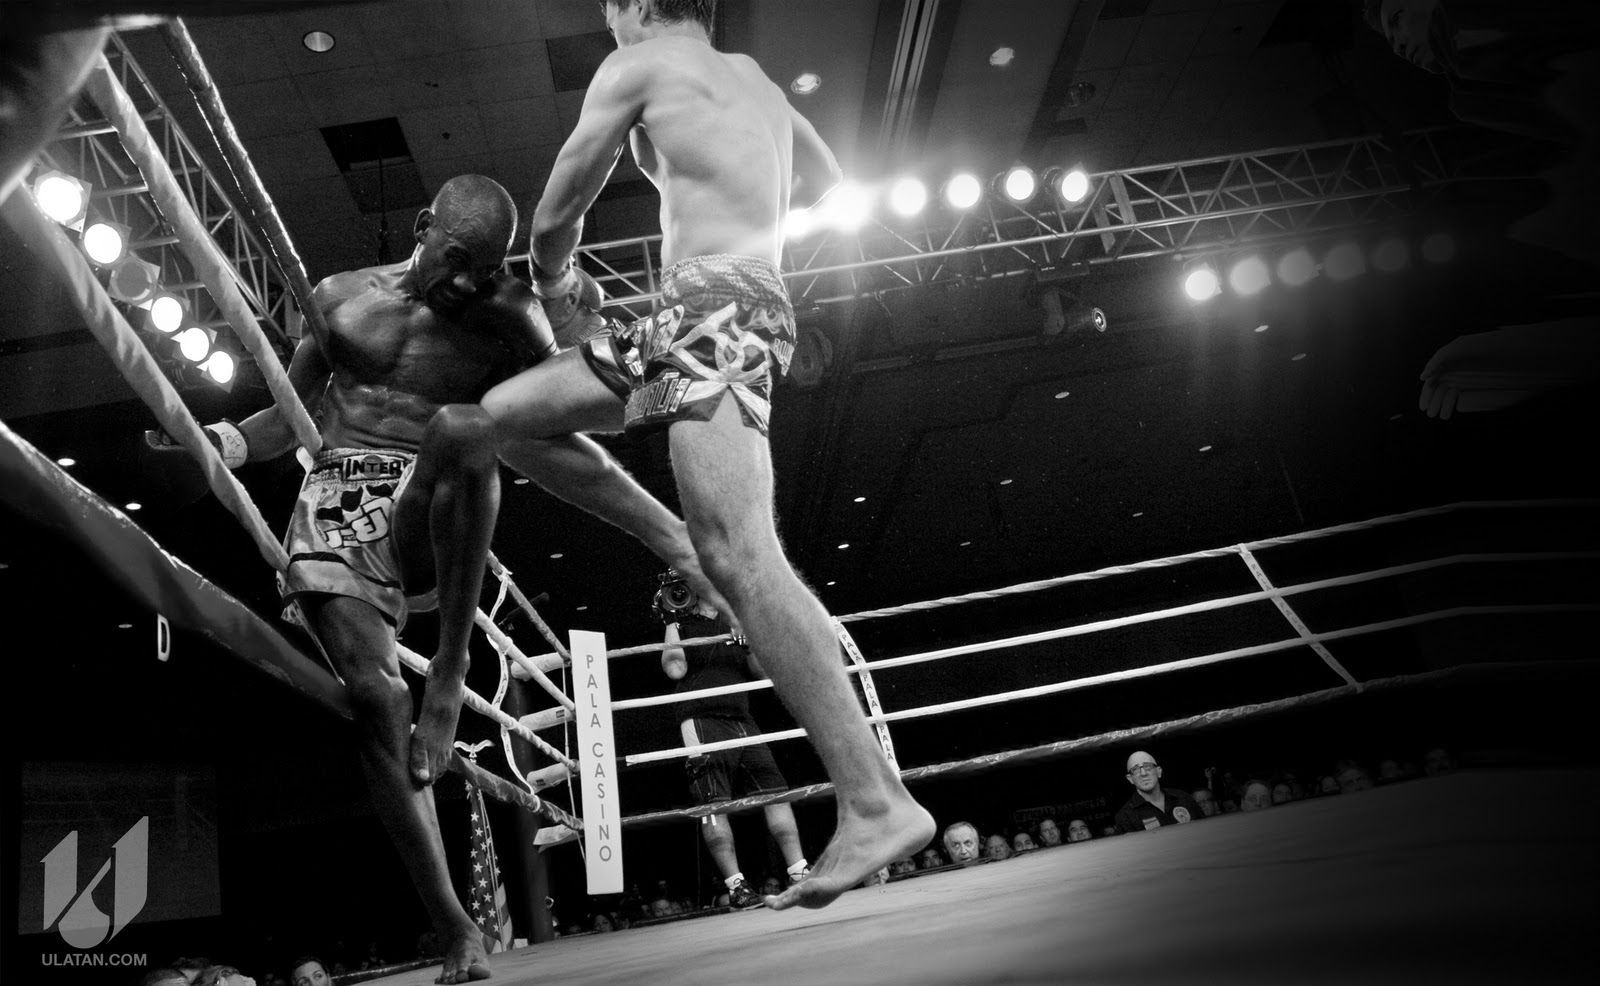 Muay Thai Boxing Wallpapers e imágenes de fondo - stmed.net